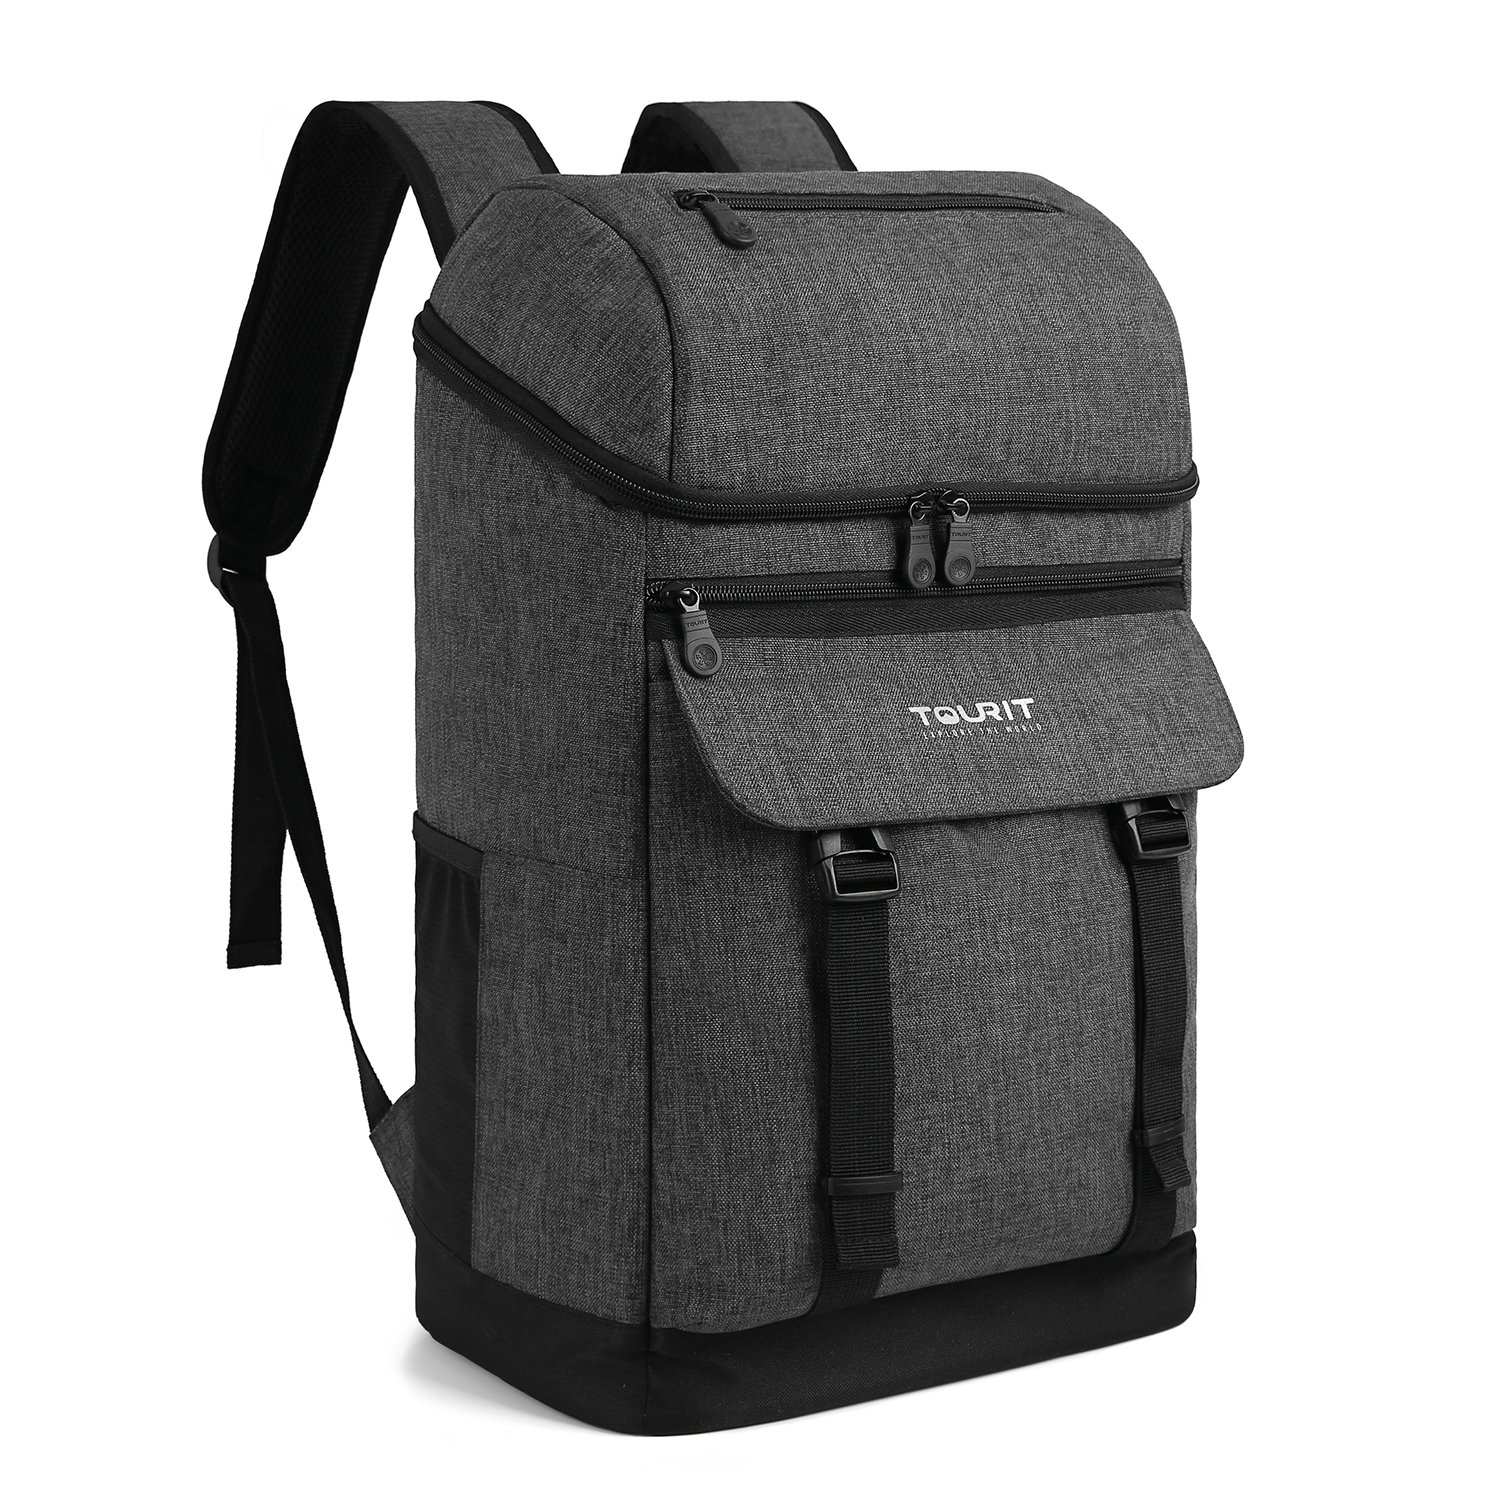 TOURIT Cooler Backpack Insulated Backpack Cooler Best Backpack Coolers